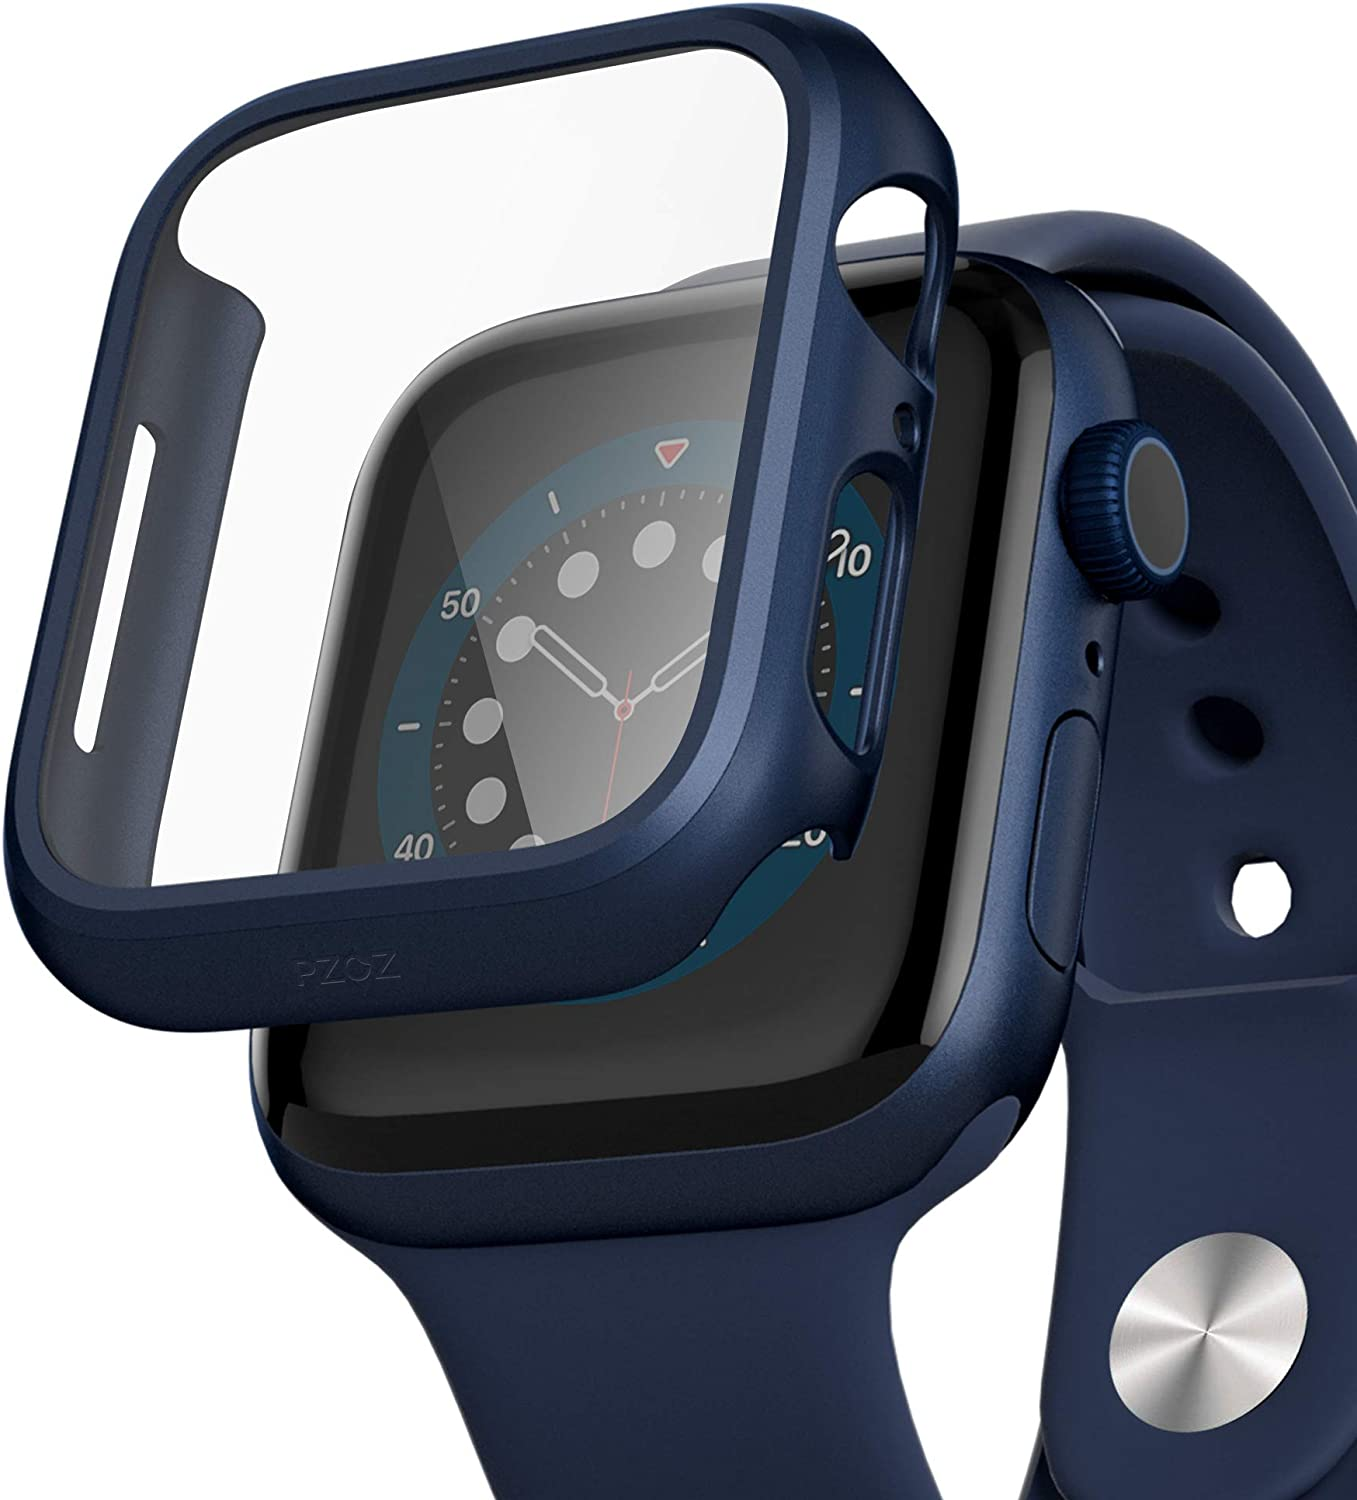 pzoz Compatible for Apple Watch Series 6/5 /4 /SE 44mm Case with Screen Protector Accessories Slim Guard Thin Bumper Full Coverage Matte Hard Cover Defense Edge for Women Men GPS iWatch (Blue)